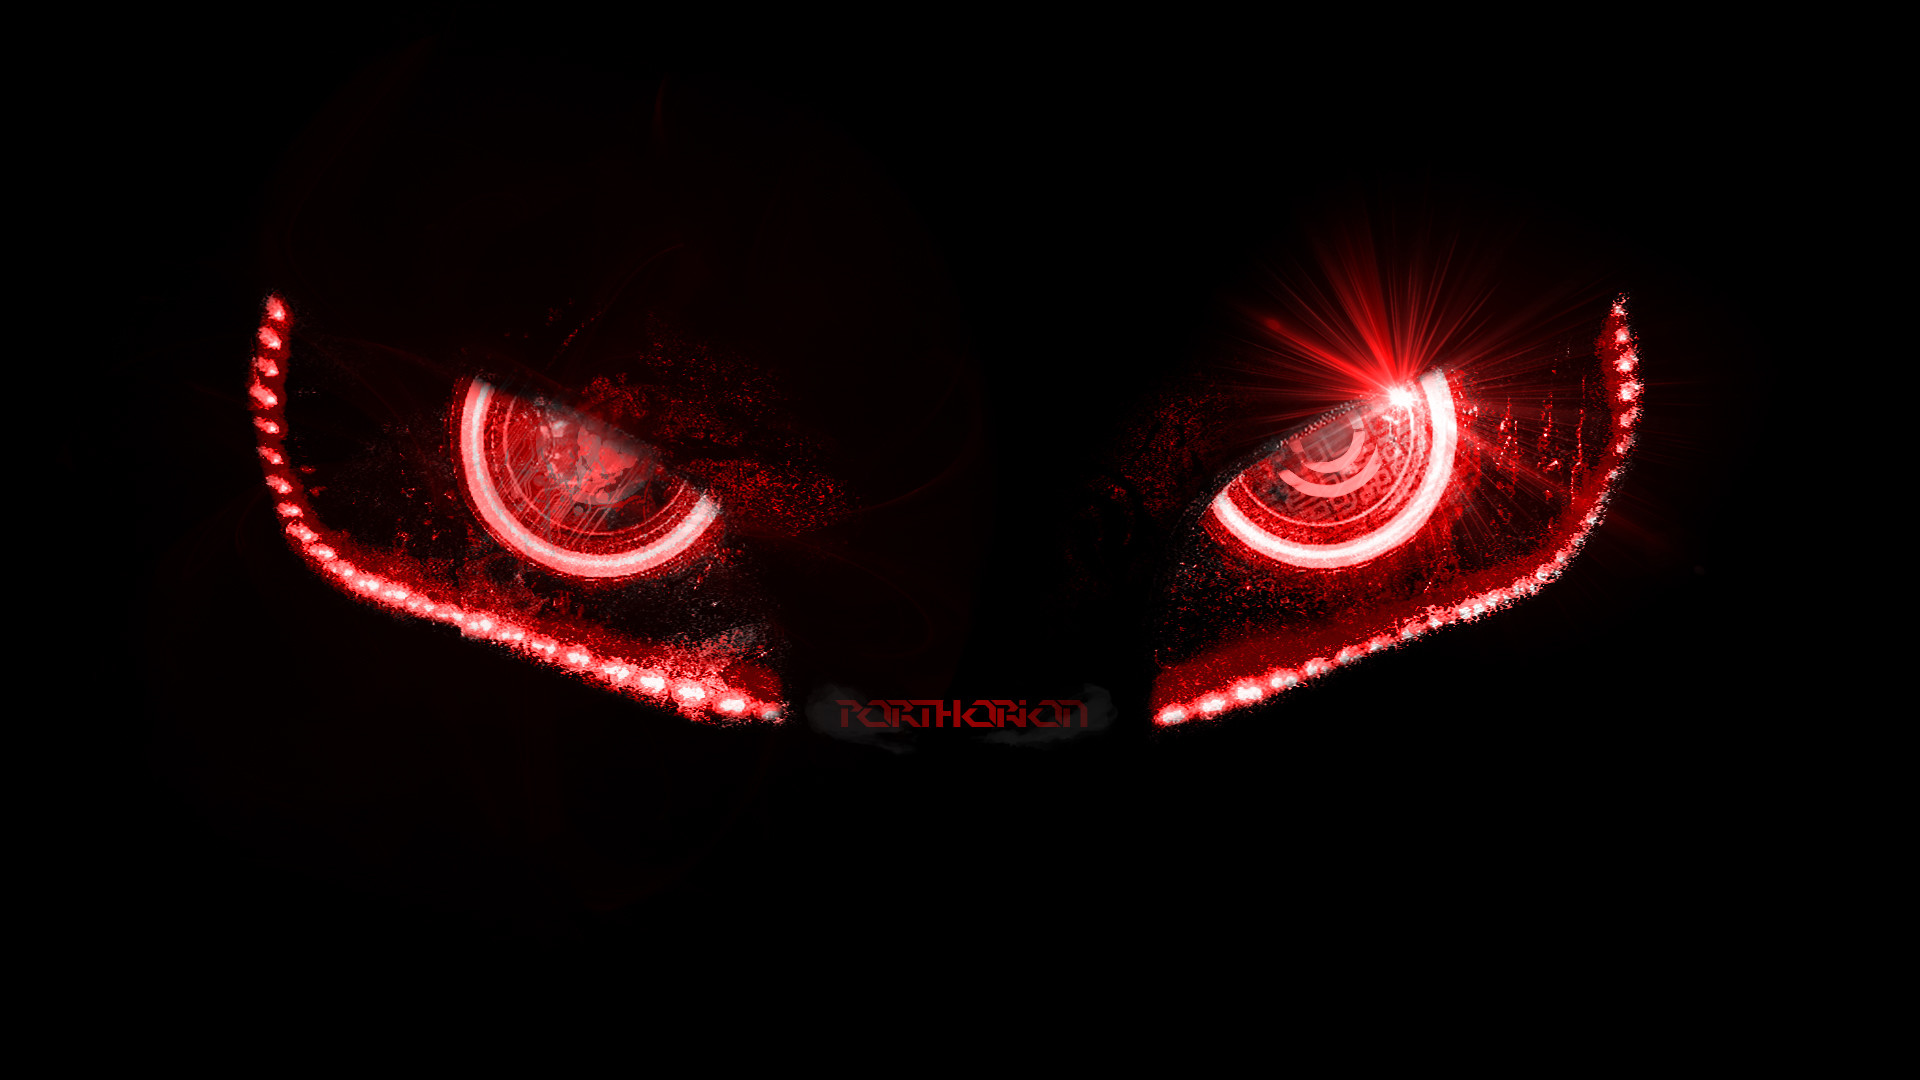 … Badass Evil Robotic Eyes – without lines by porthorion